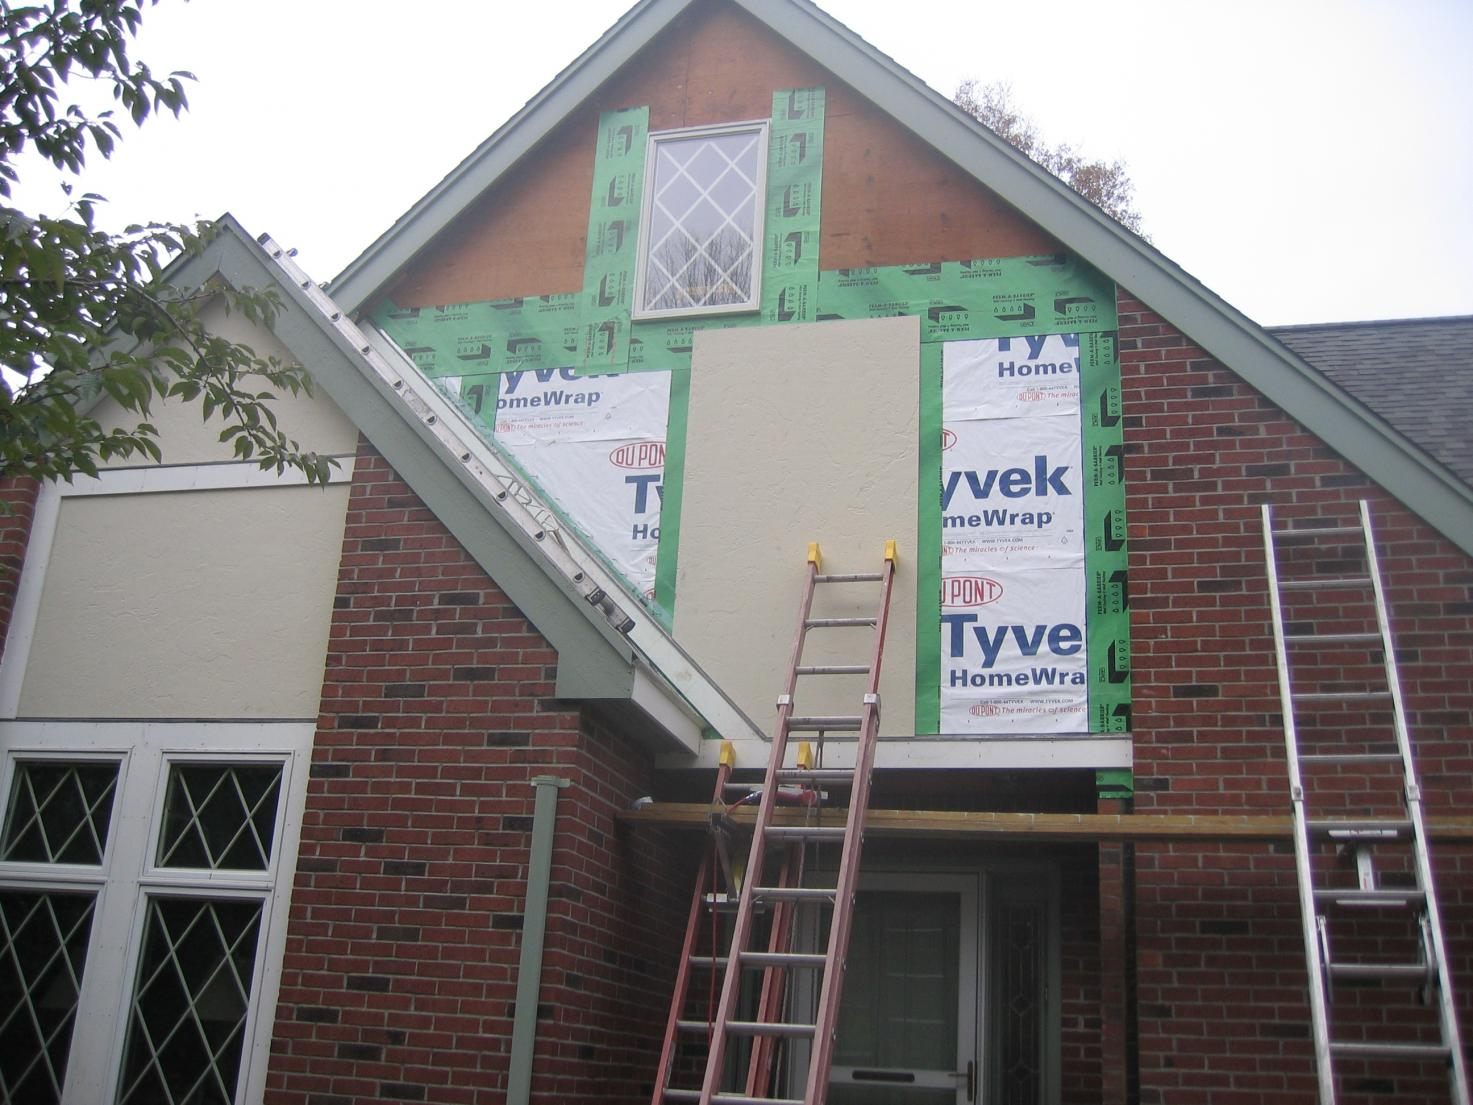 stucco cement board windows siding and doors contractor talk